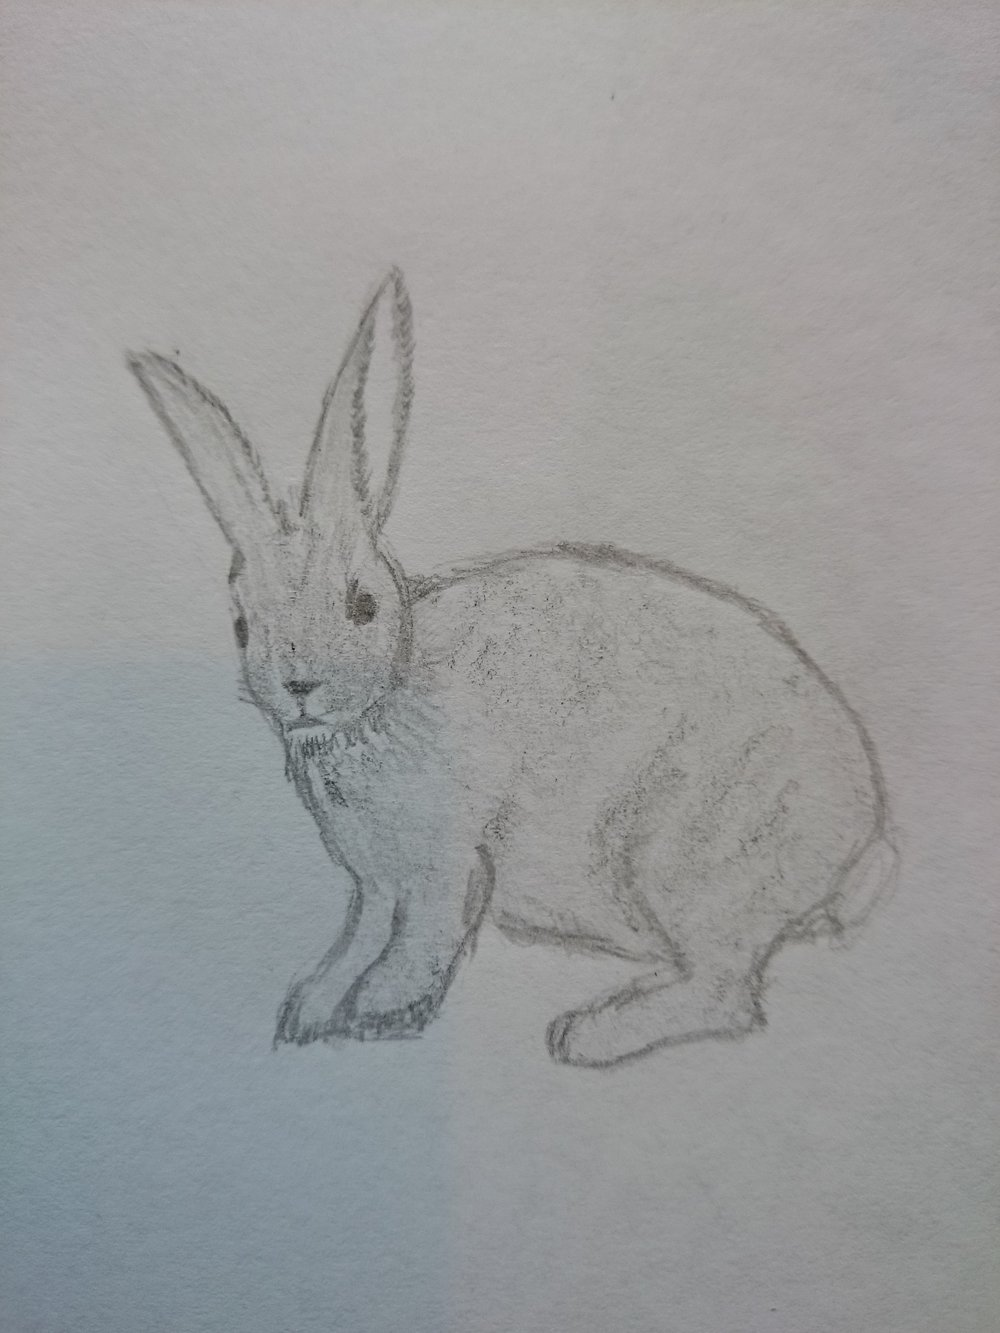 Osley the rabbit, head turned to look directly at the viewer. Que is alert and quer long ears are standing straight up. Quer hind legs are ready to leap if que wants to, and que is very round and delightfully furry. By LM.